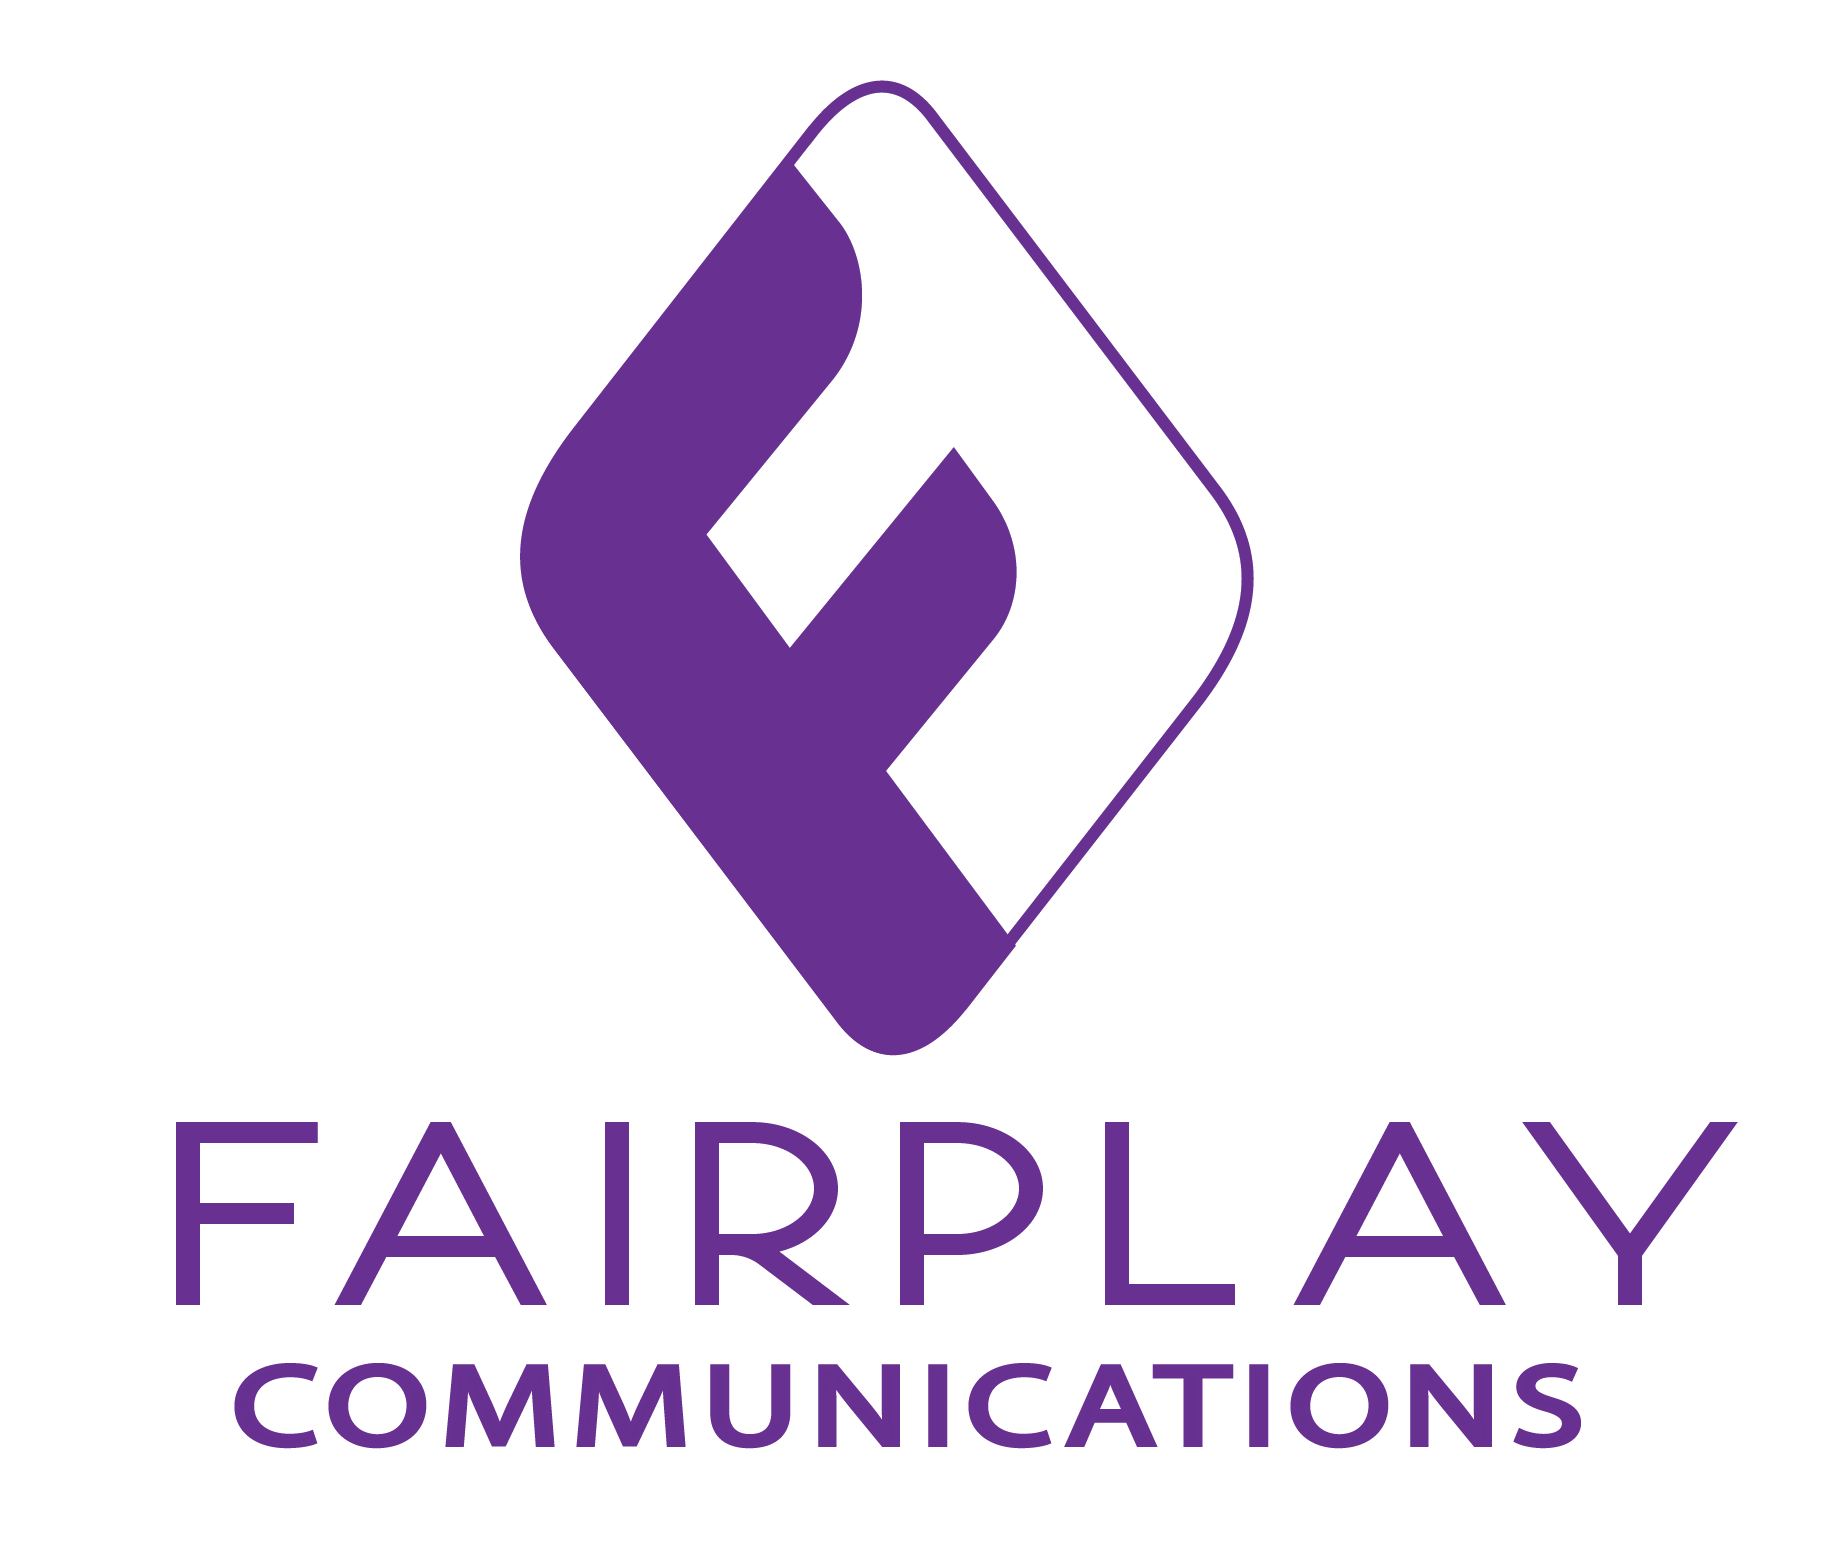 New Business Fairplay Communications Aims to Bring Community Back to the Workplace